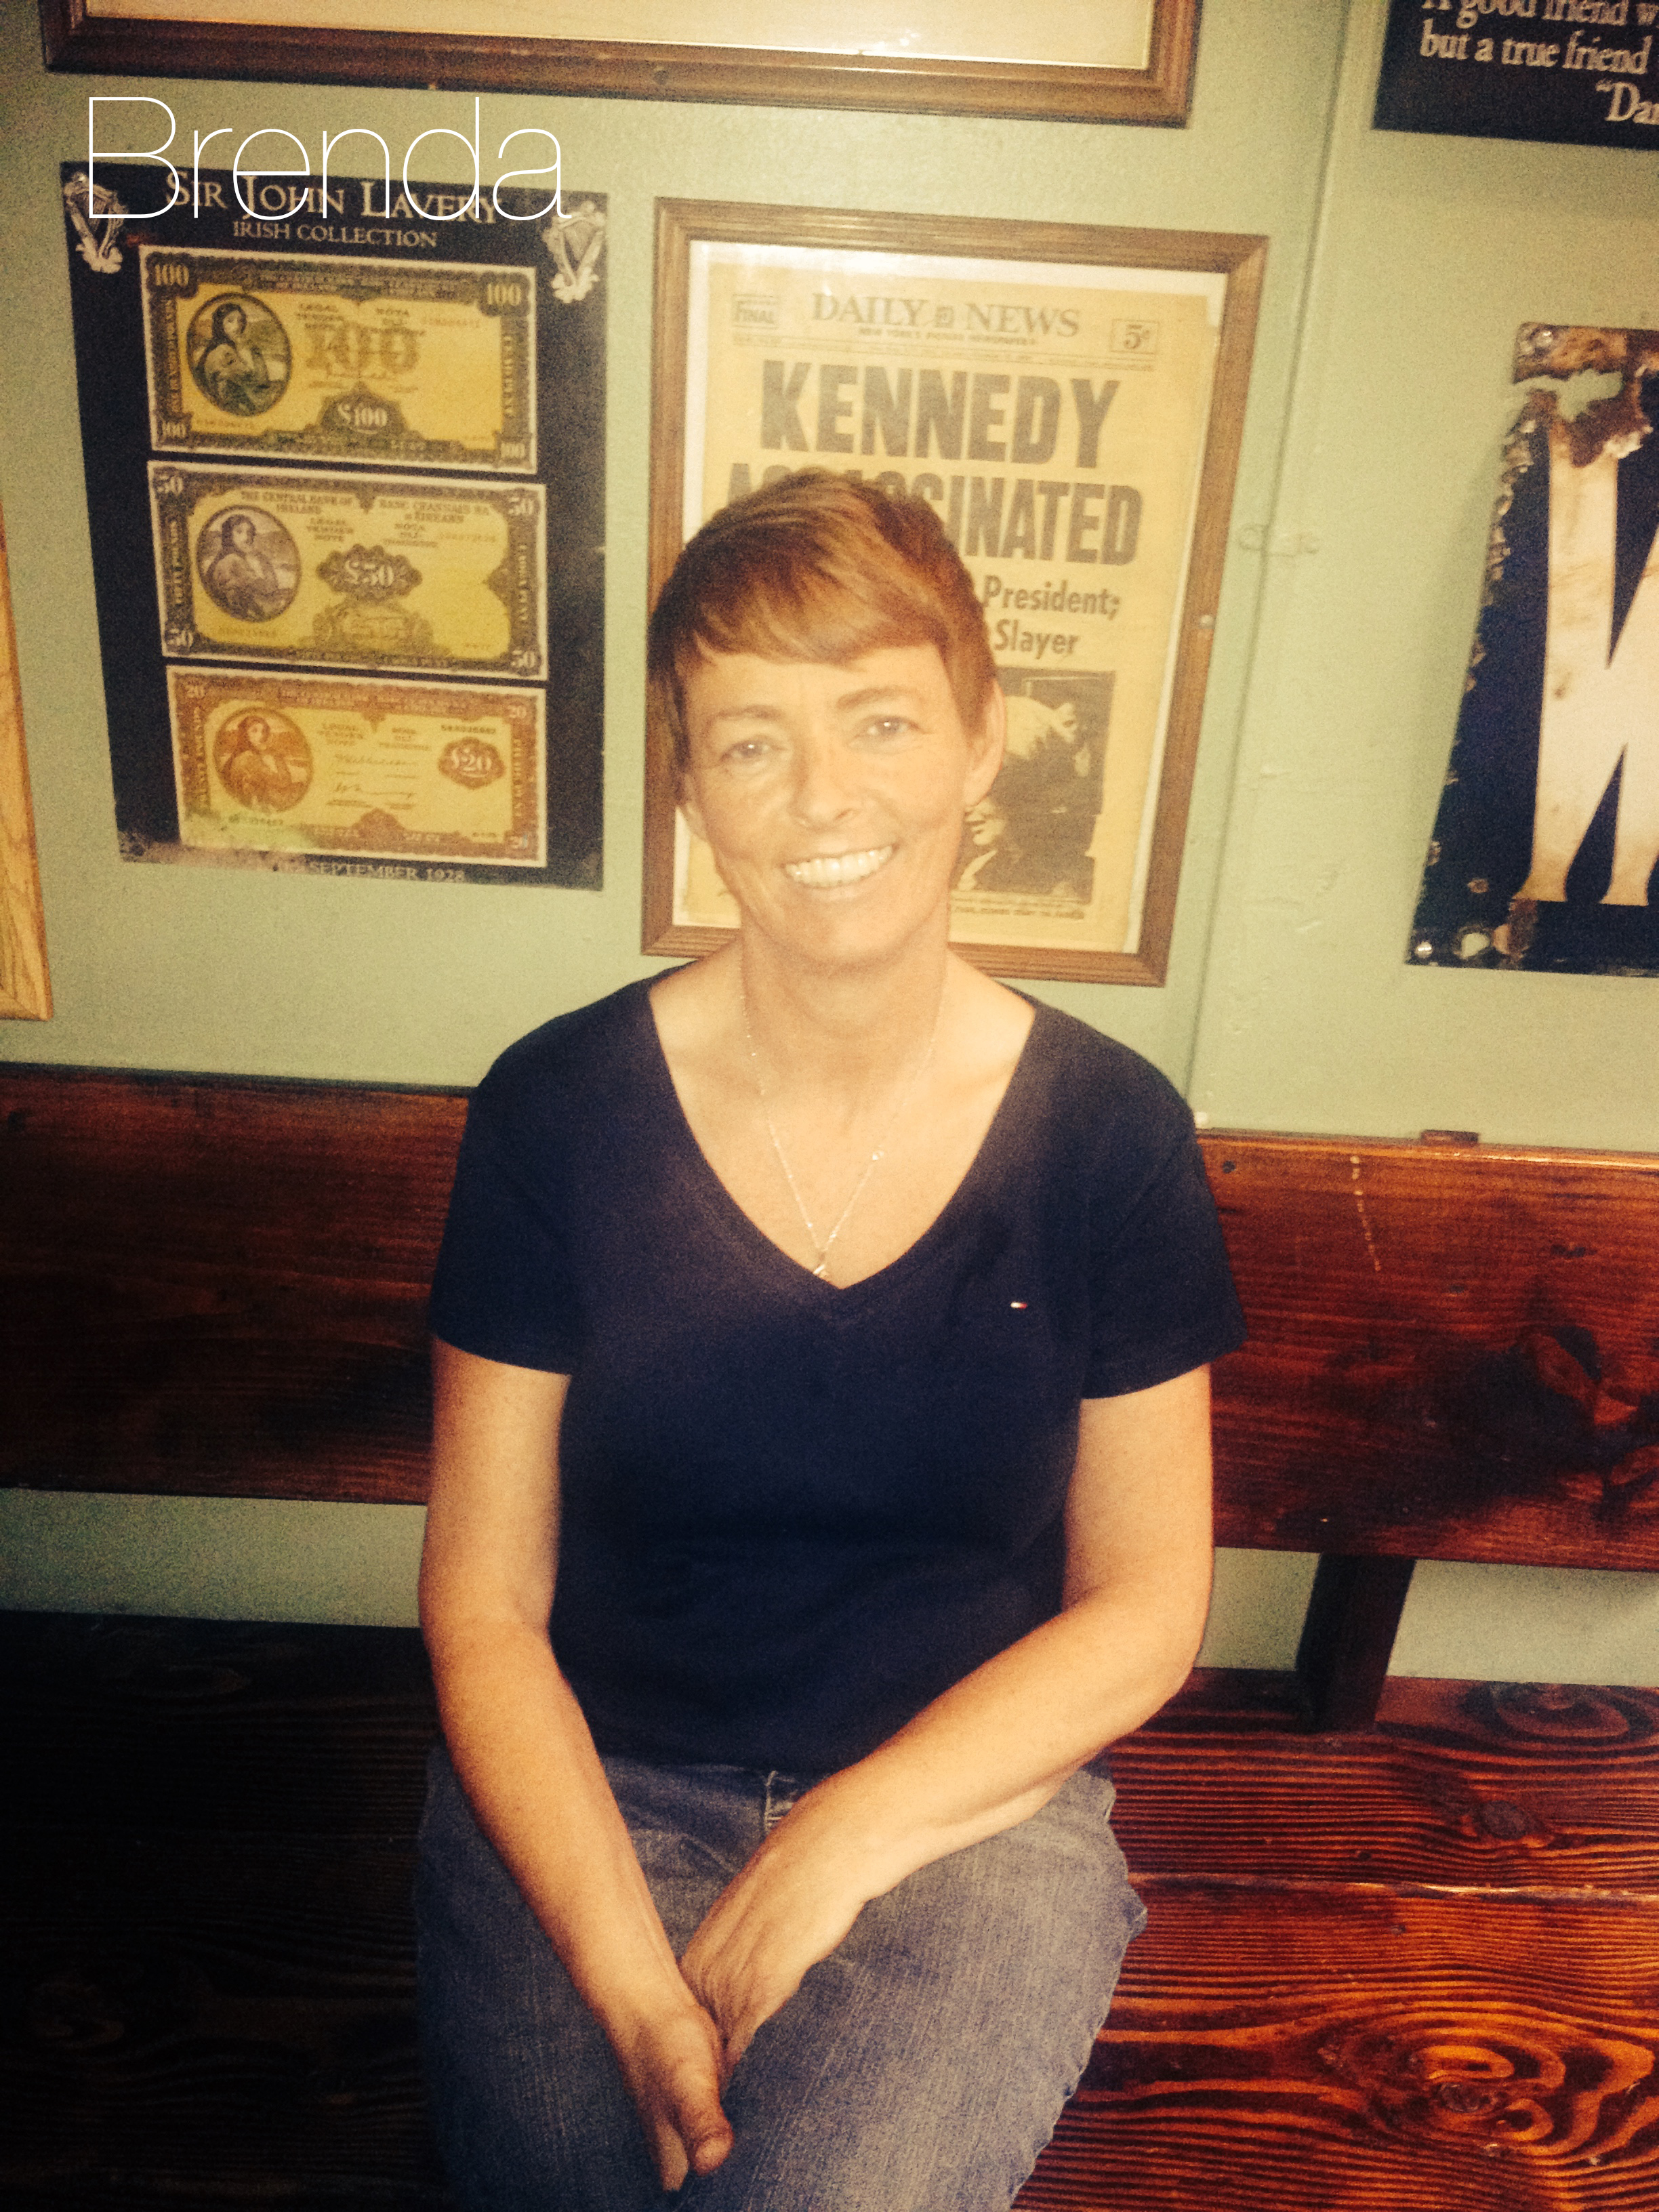 Hails From:  Ireland  Brenda saved Phoenix from oblivion when she purchased the bar in 2011. Since then she has transformed the bar from a dingy dive into a great local watering hole.